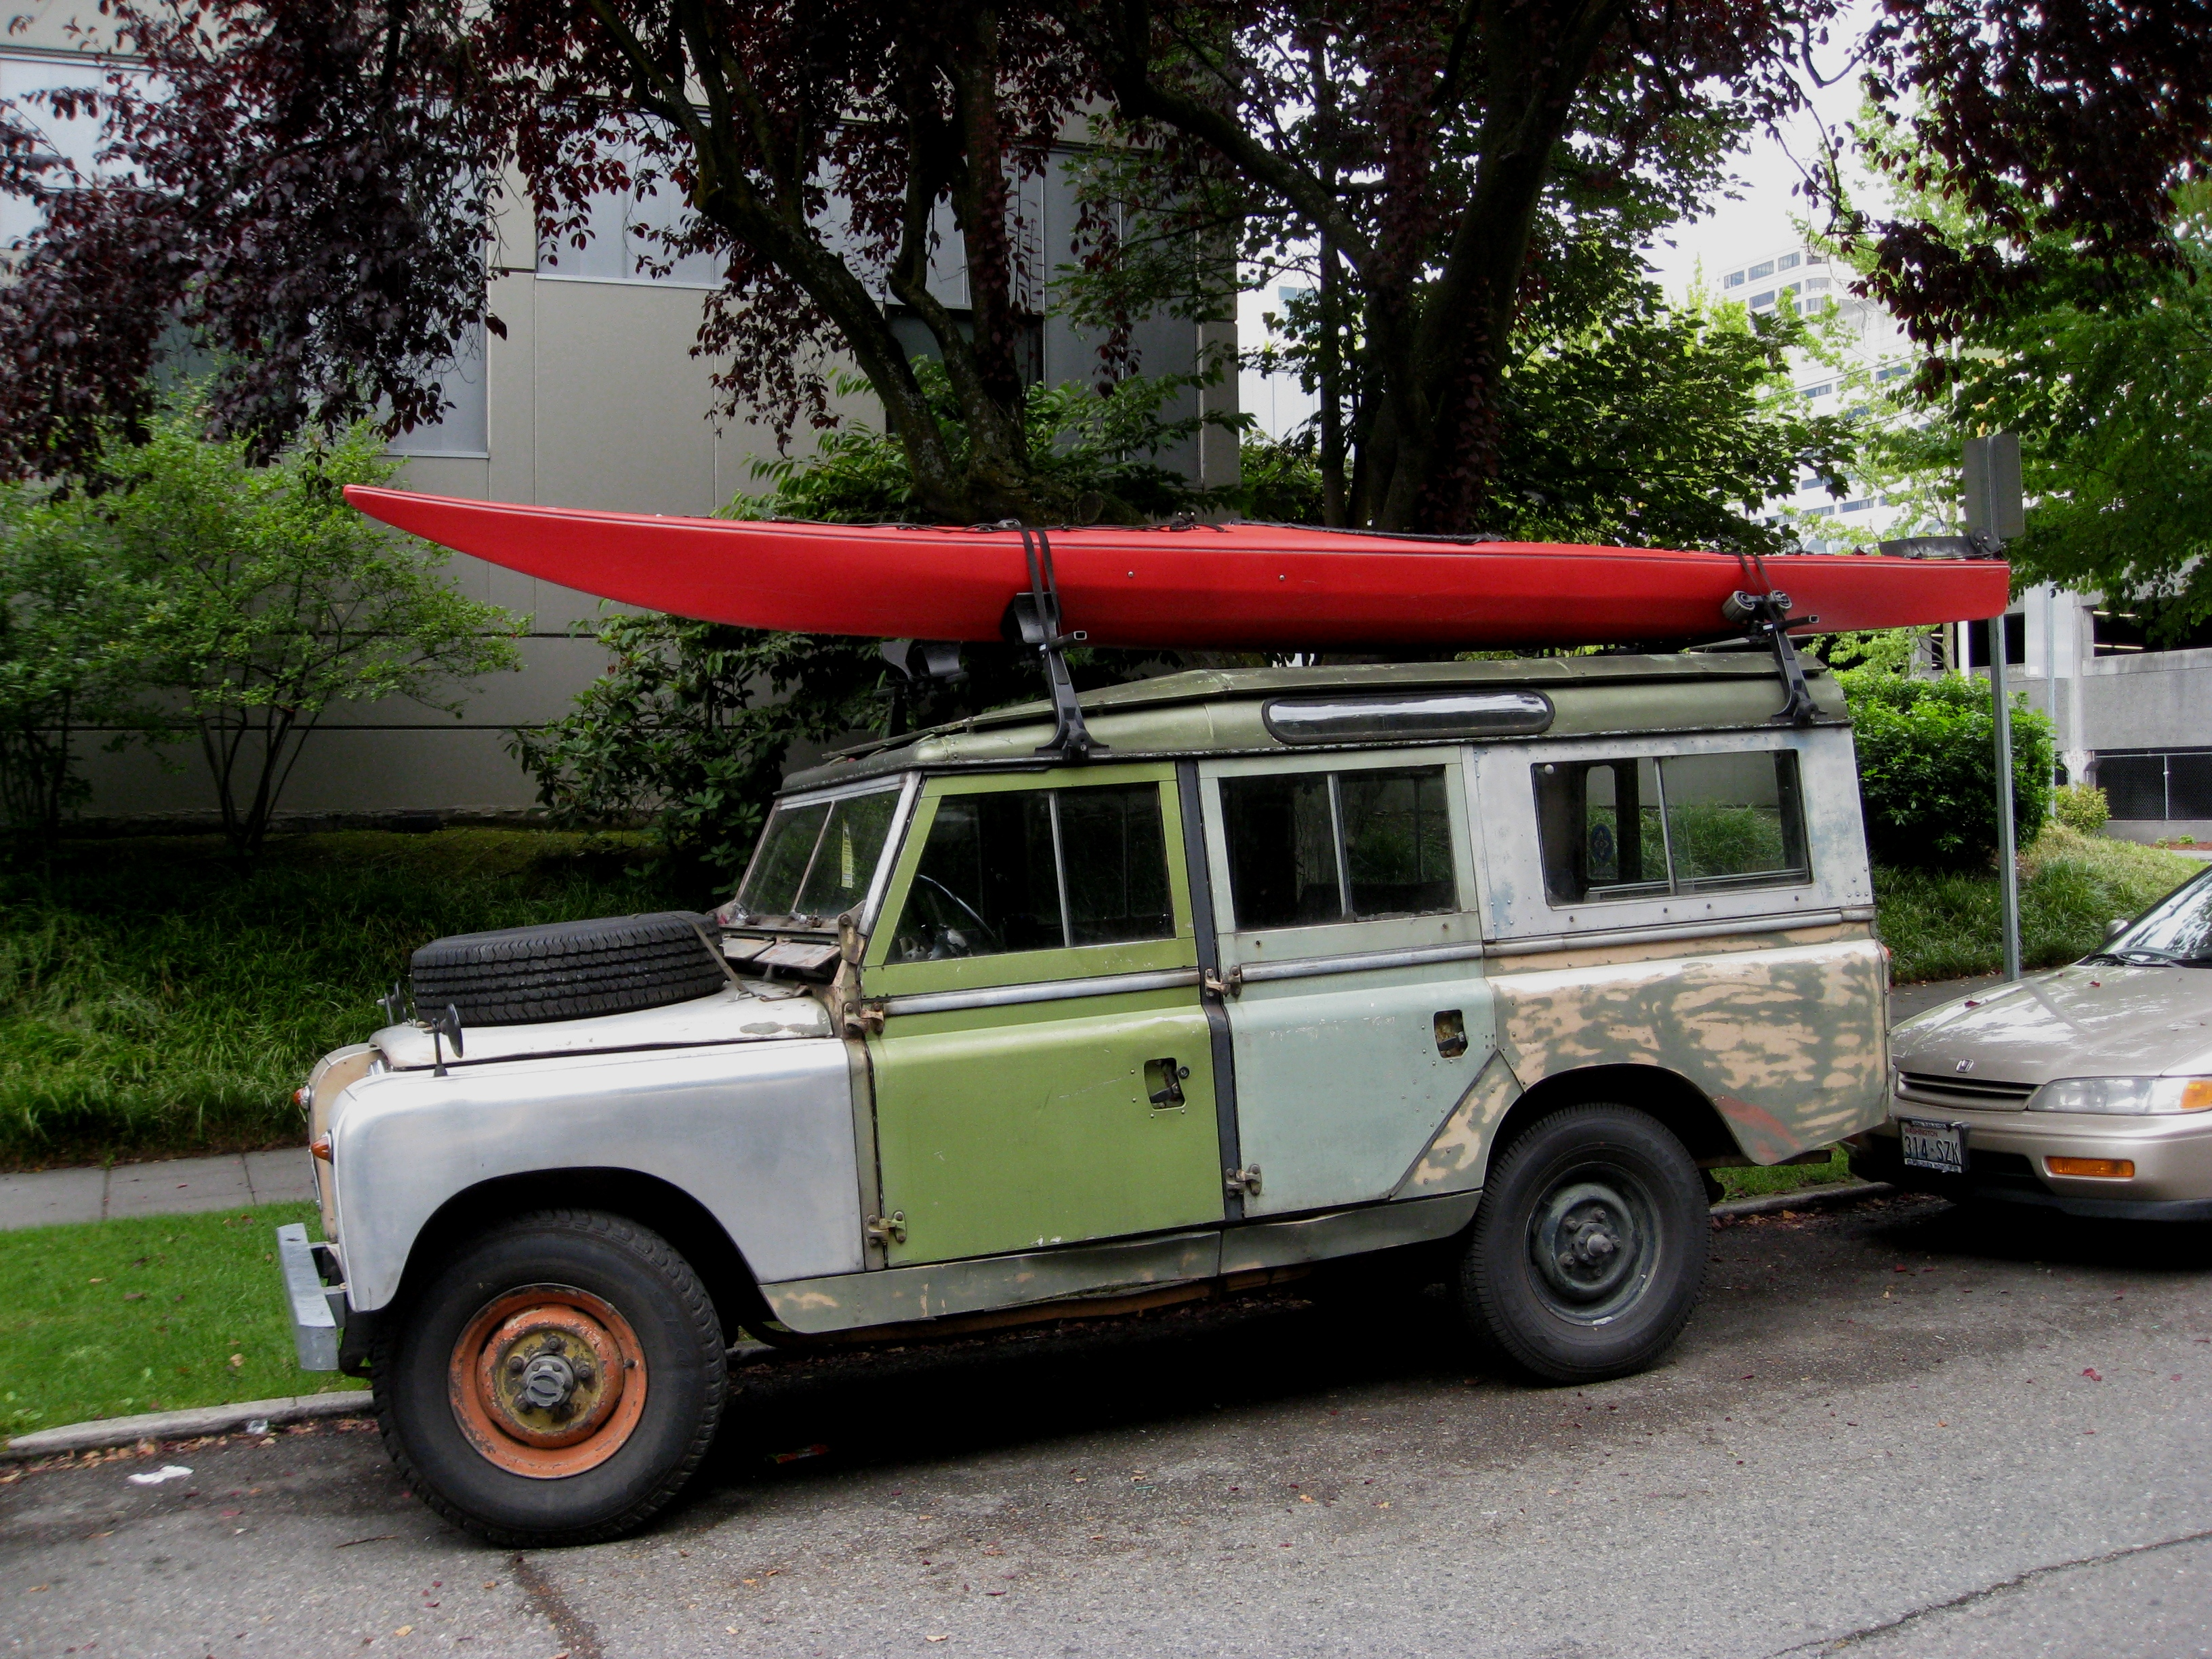 Classic_Land_Rover_%28with_Kayak%29_-_Fl